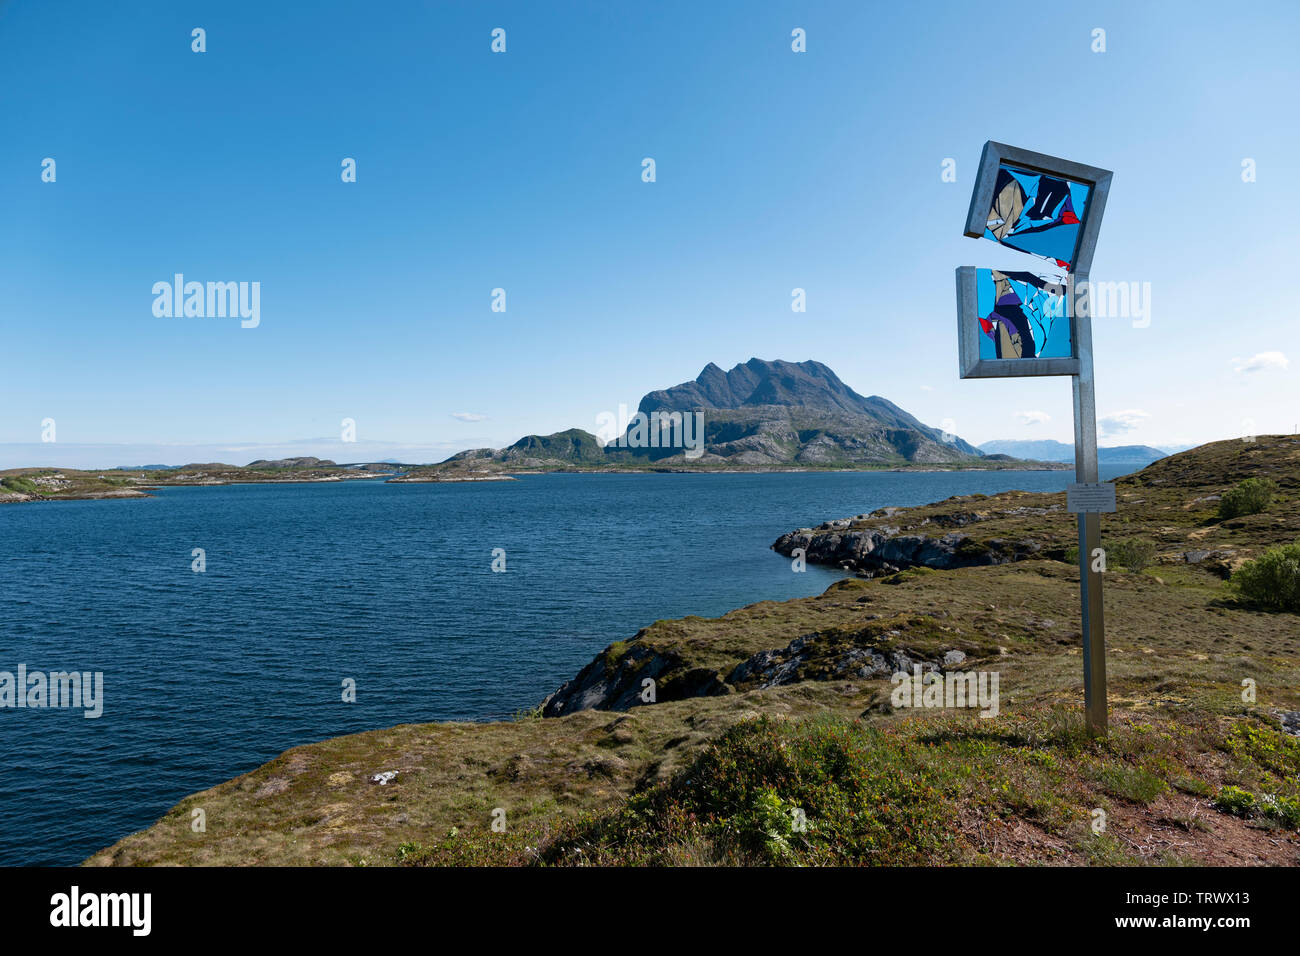 """The artwork """"Tytje ta"""" by the glass artist Turid Grov on Heroy Island, Norway. - Stock Image"""